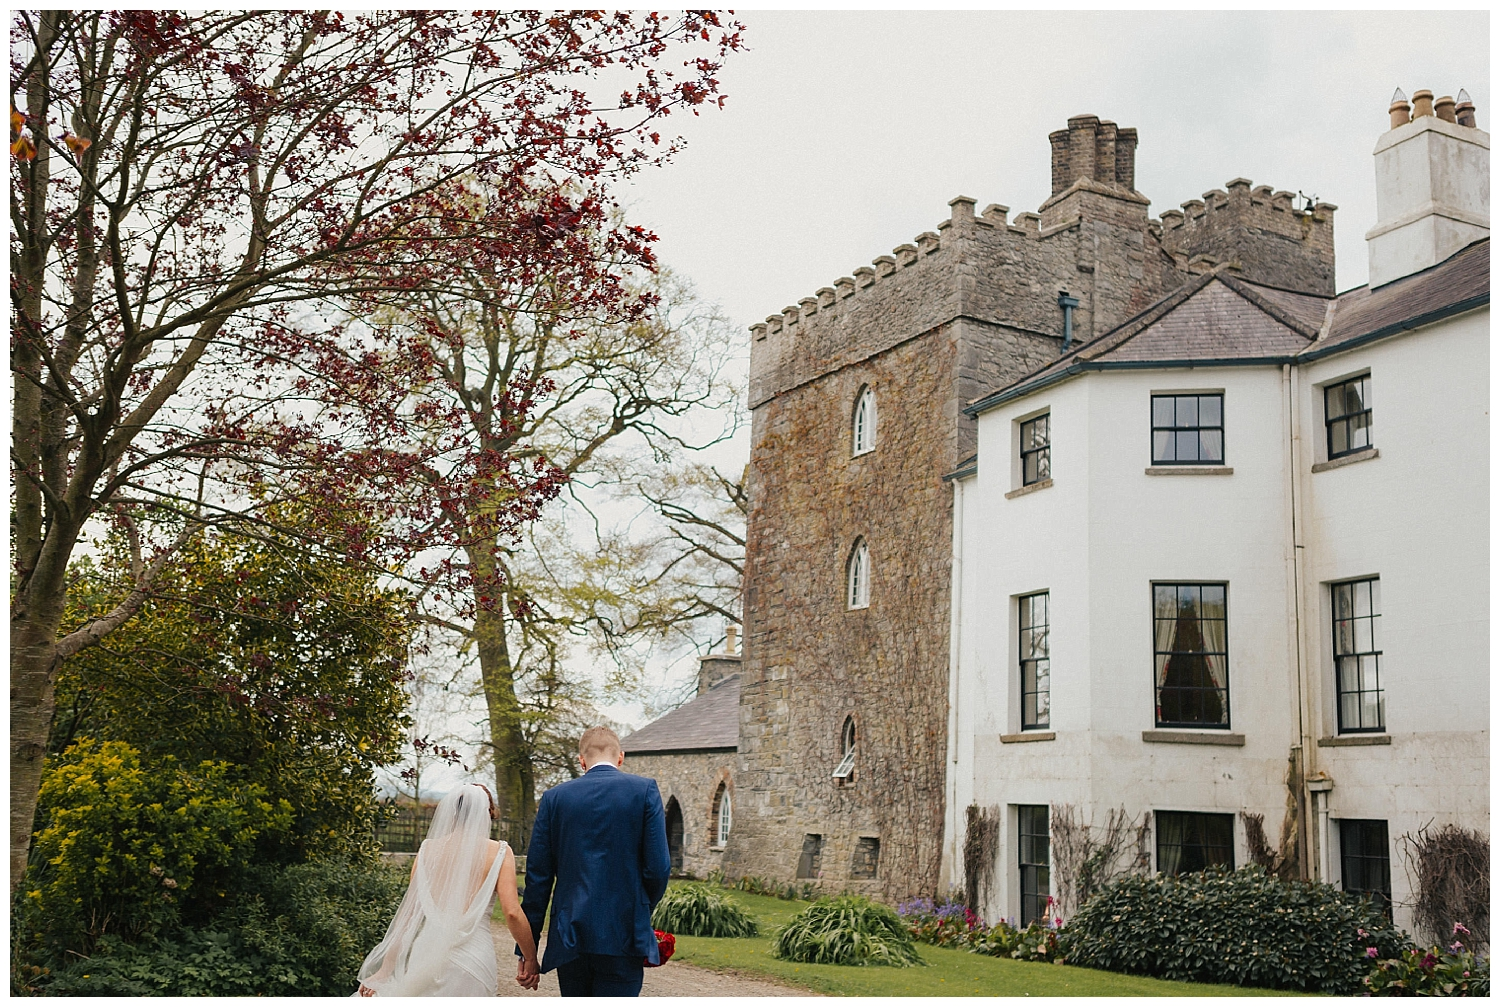 Barberstown_Castle_Wedding_Photographer_Livia_Figueiredo_539.jpg